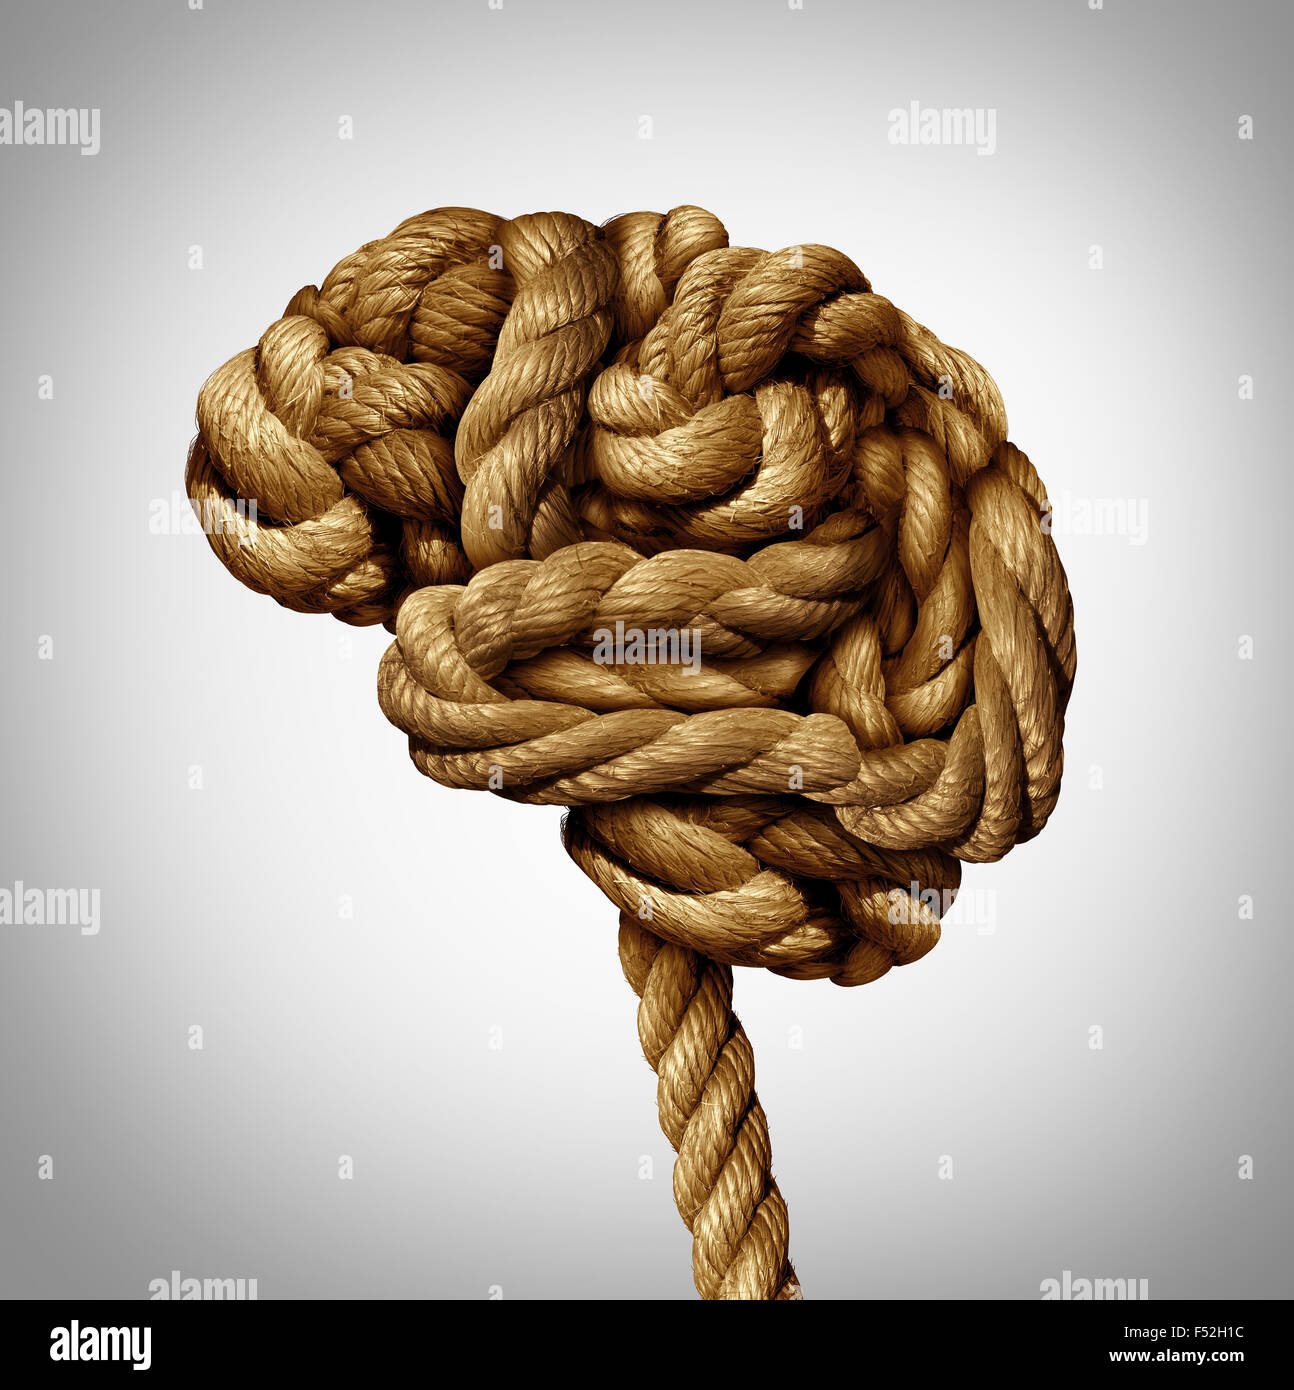 Tangled brain mental health concept as a rope twisted into a human thinking organ as a medical neurological symbol - Stock Image